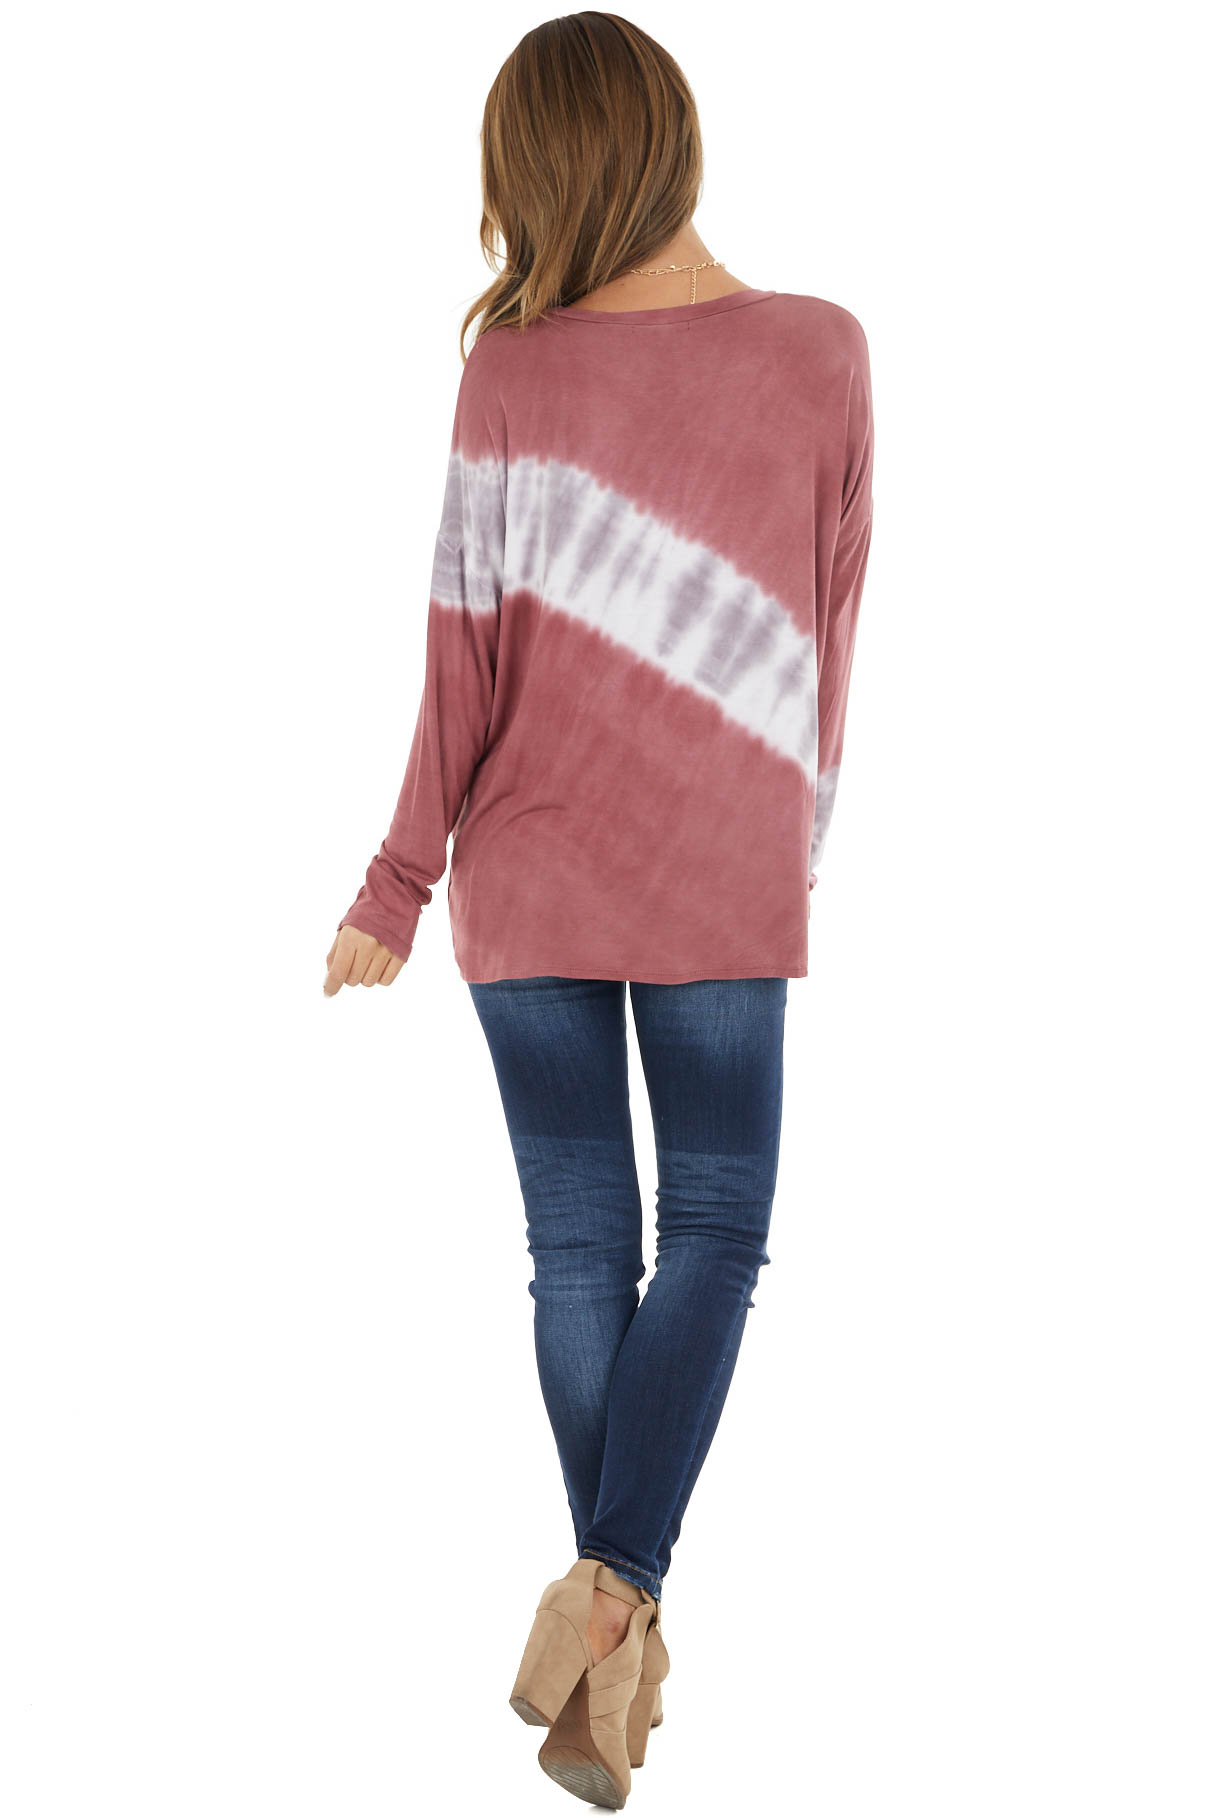 Marsala and Mauve Tie Dye Print Long Sleeve Knit Top